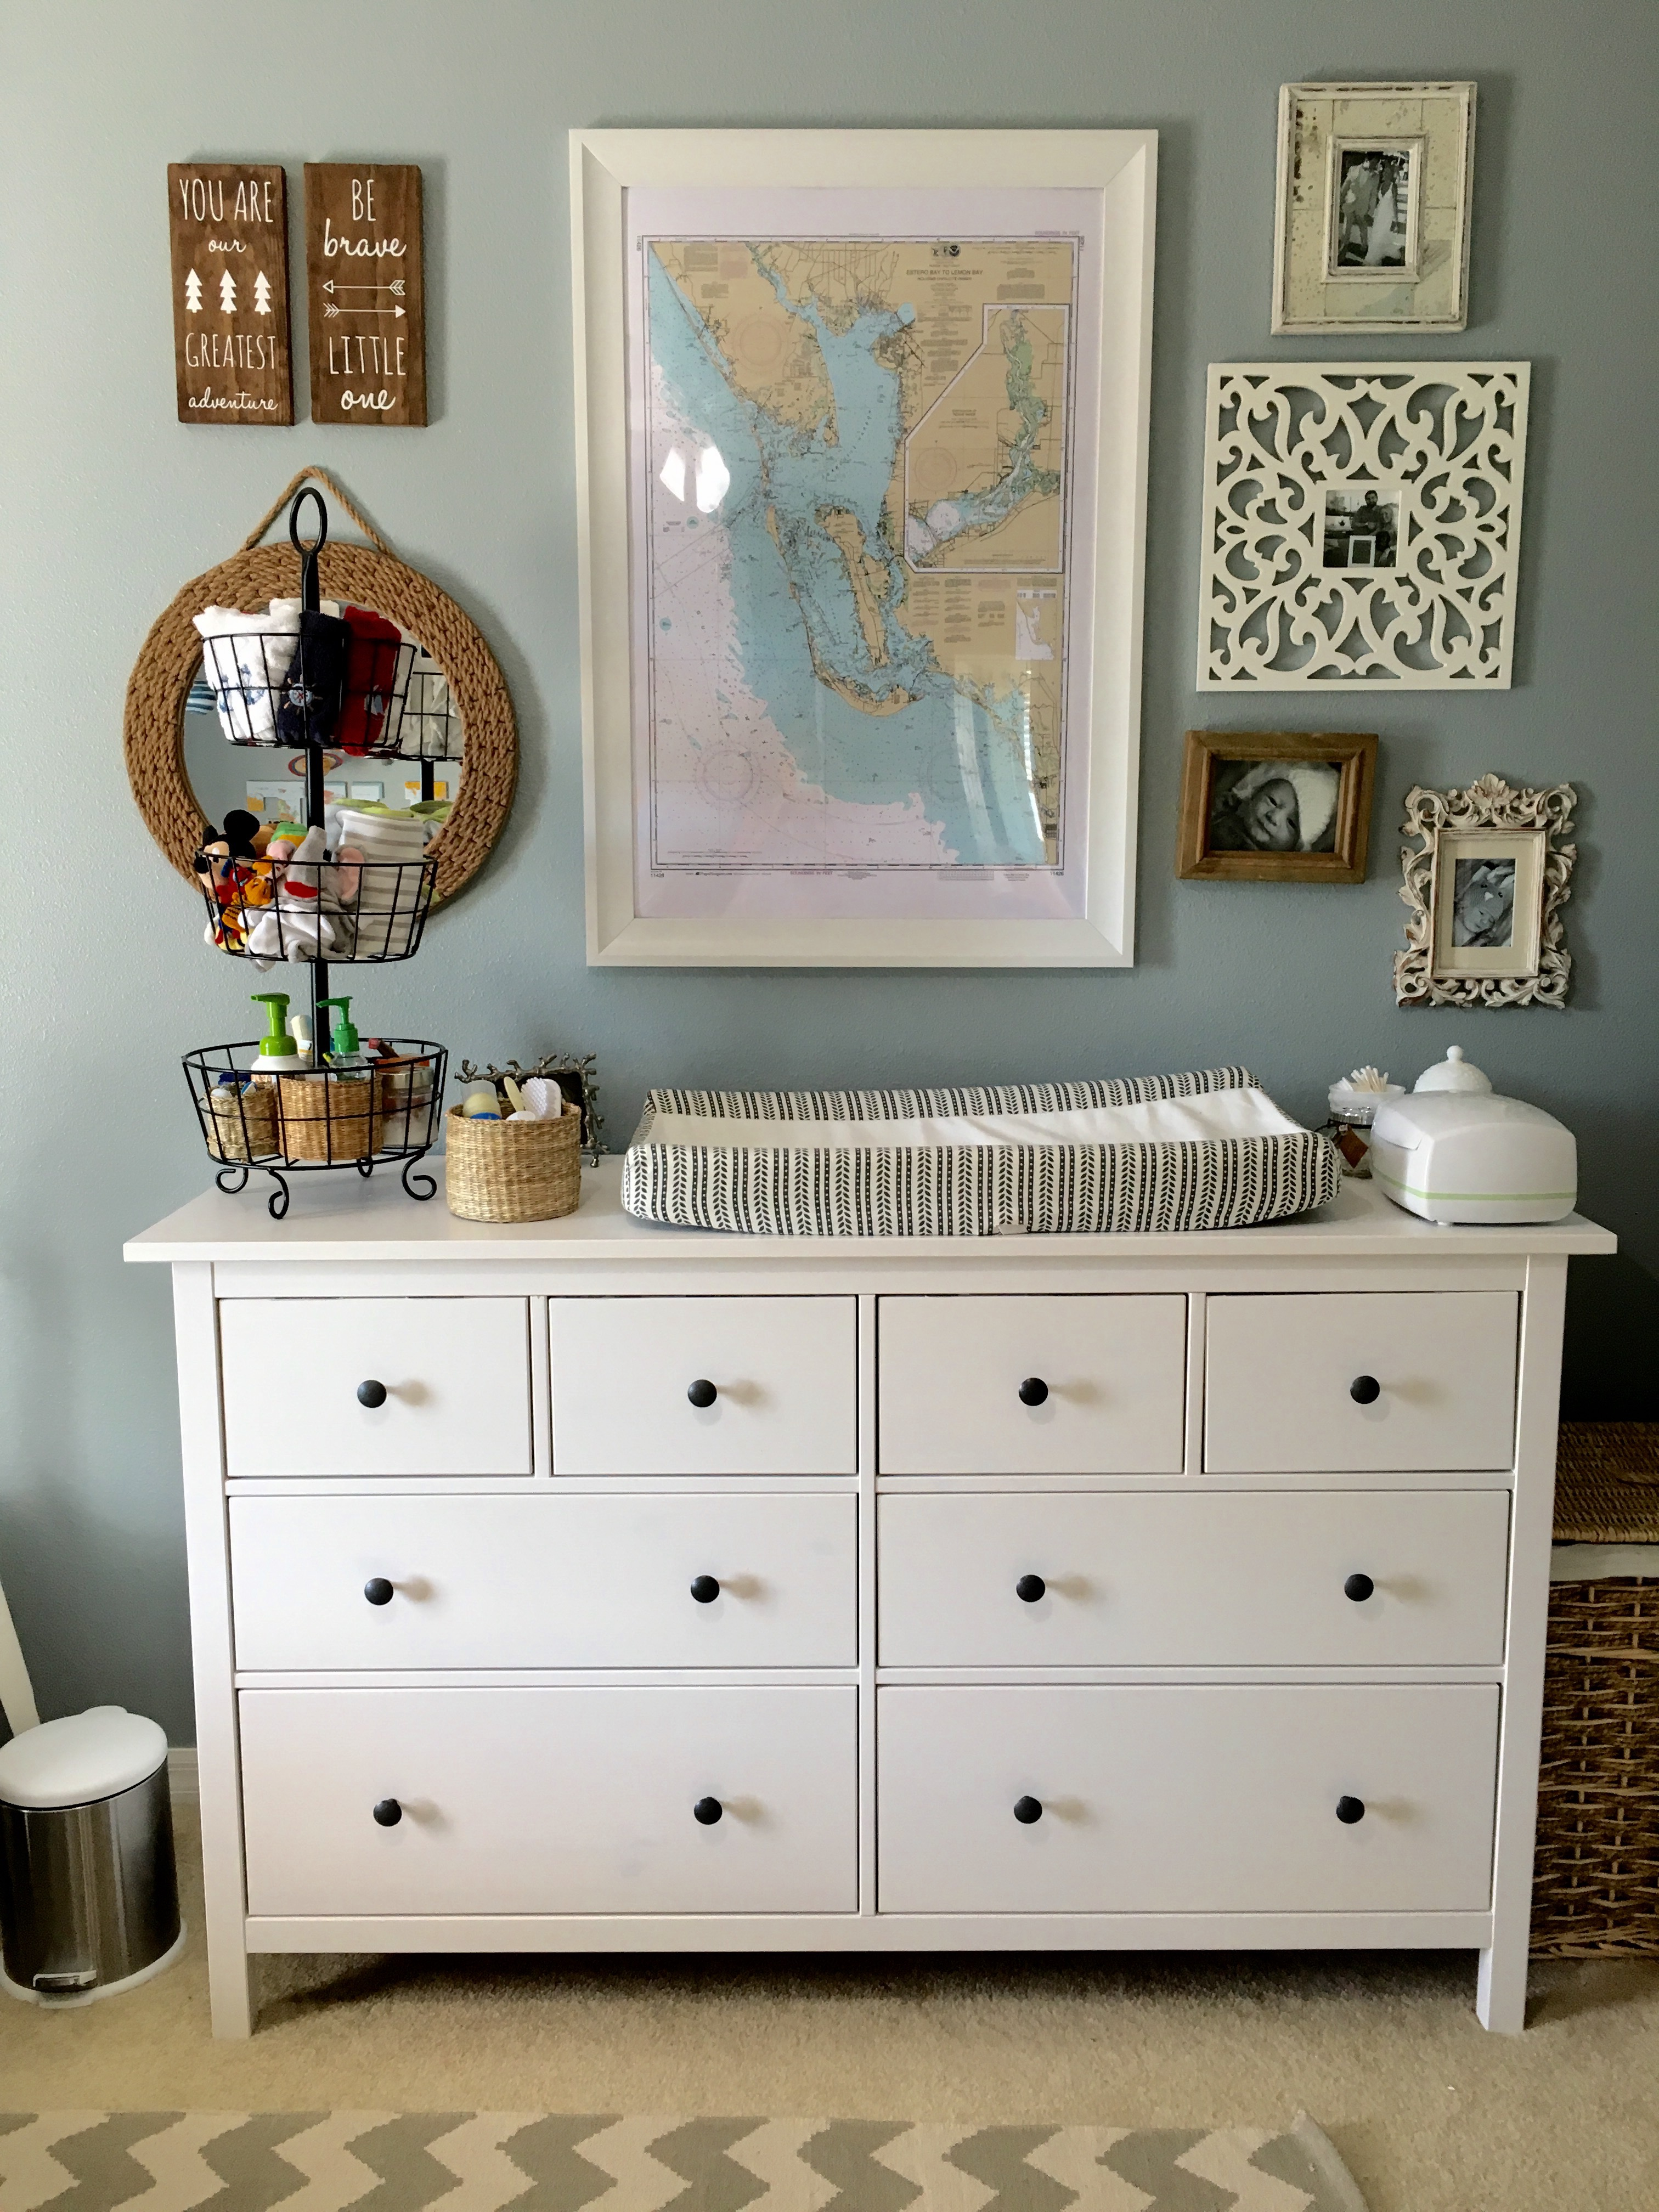 Baby Boy Nursery Style- J's Eclectic Nursery Creation | Baby Boy Nursery | Nursery Decor | Nursery Decorating | Baby decor | lifestyle blog | decorating |